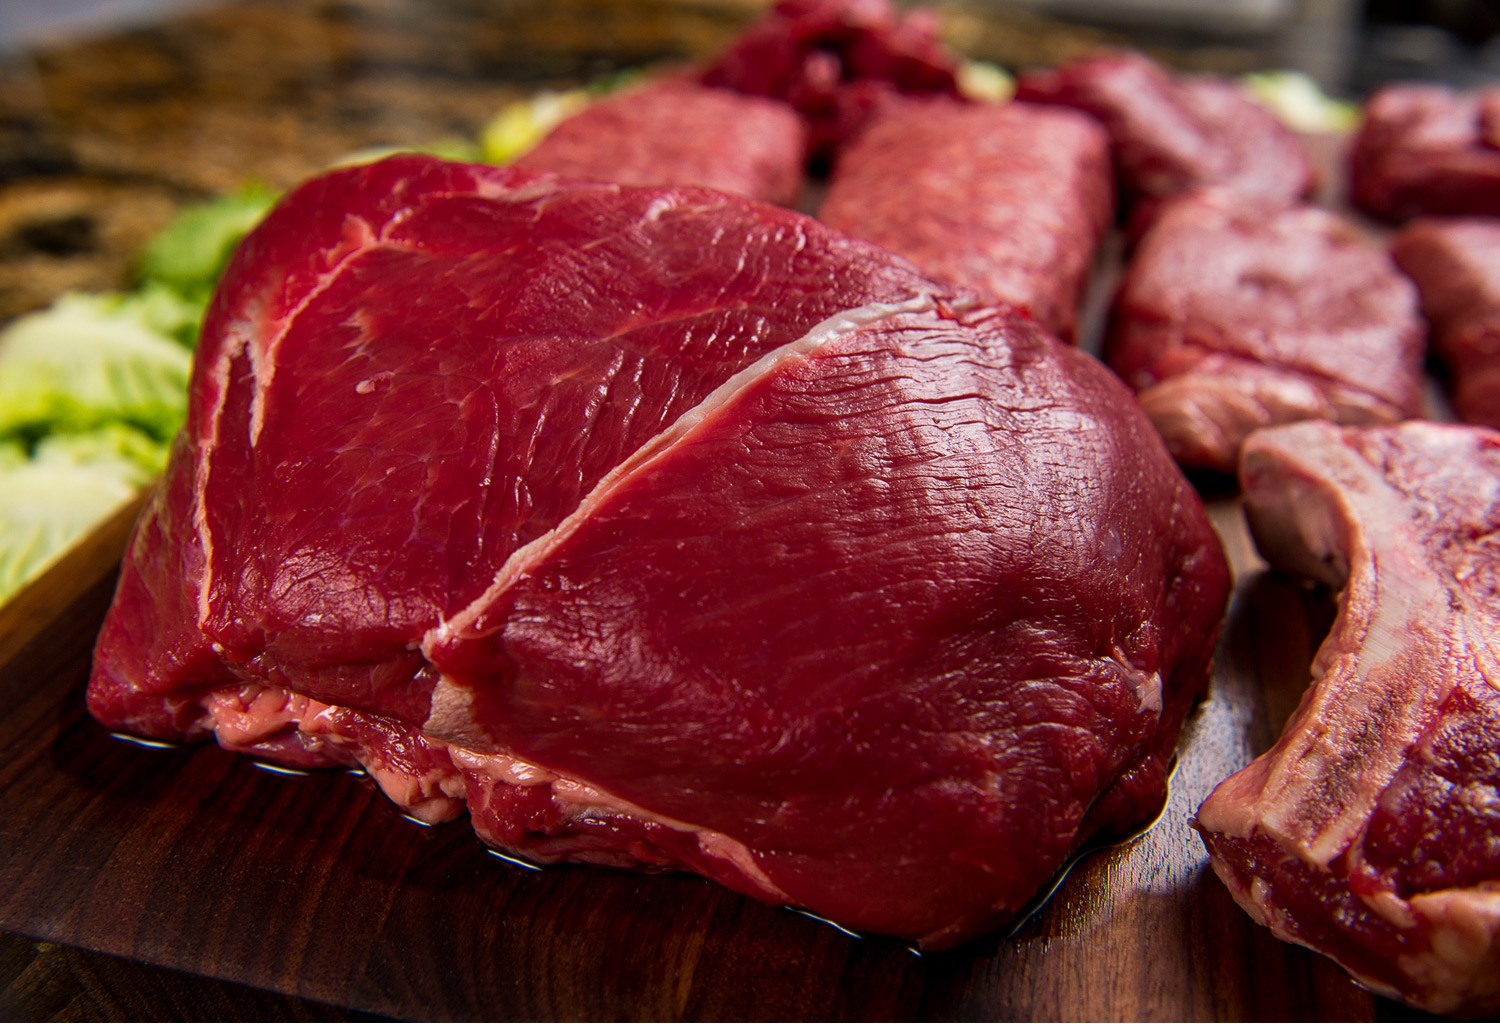 River Watch Beef – Premium Grass-Fed Beef Sampler Package